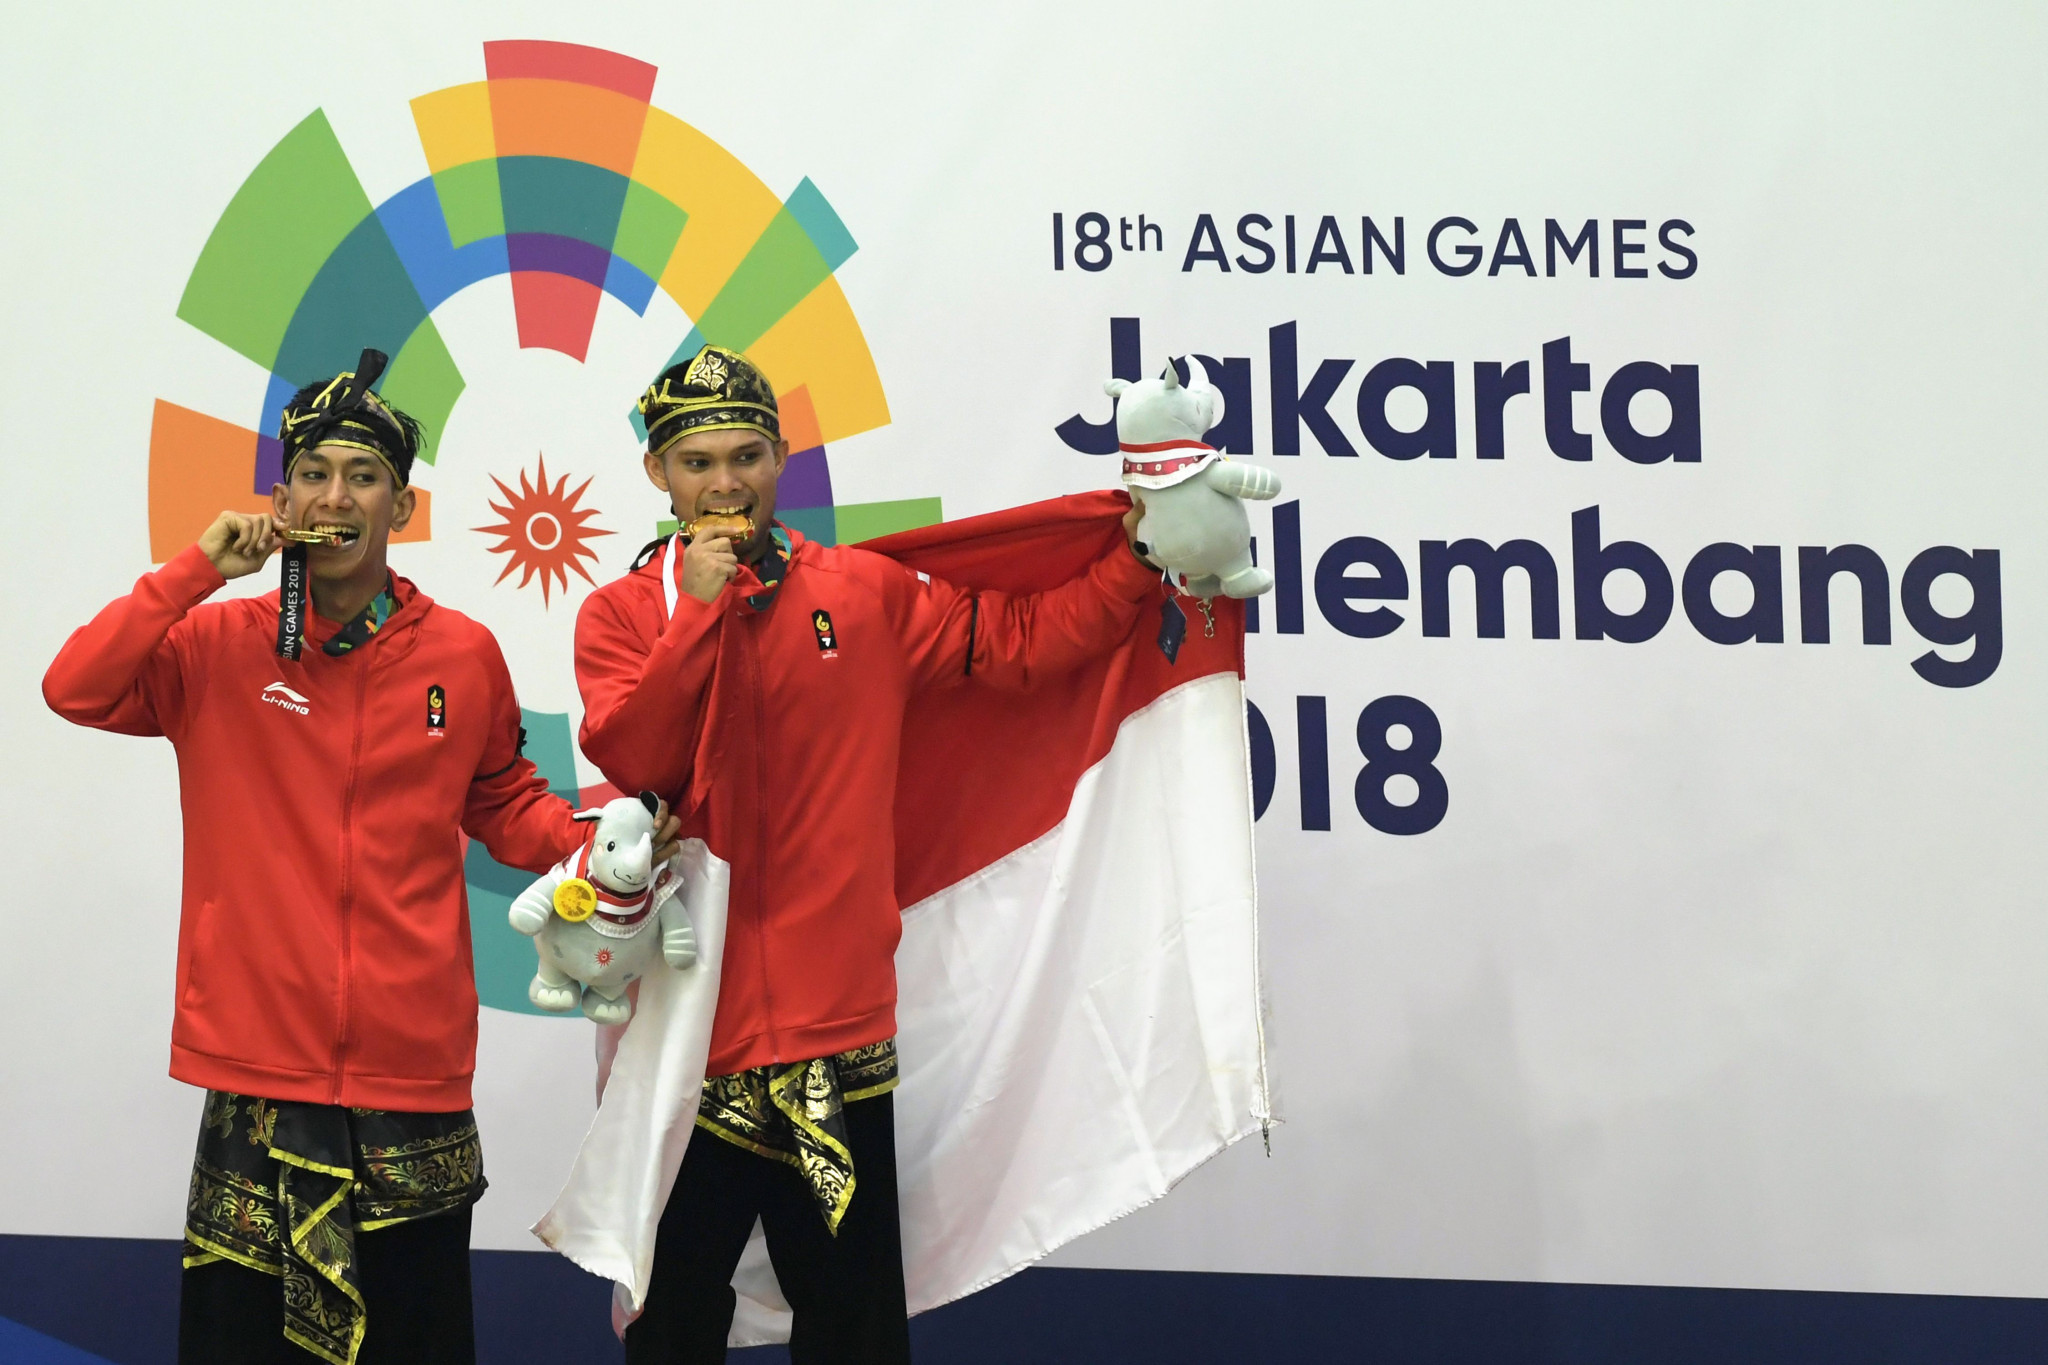 Hosts Indonesia surge up medal table as unified Korean team claim third dragon boat racing medal at 2018 Asian Games